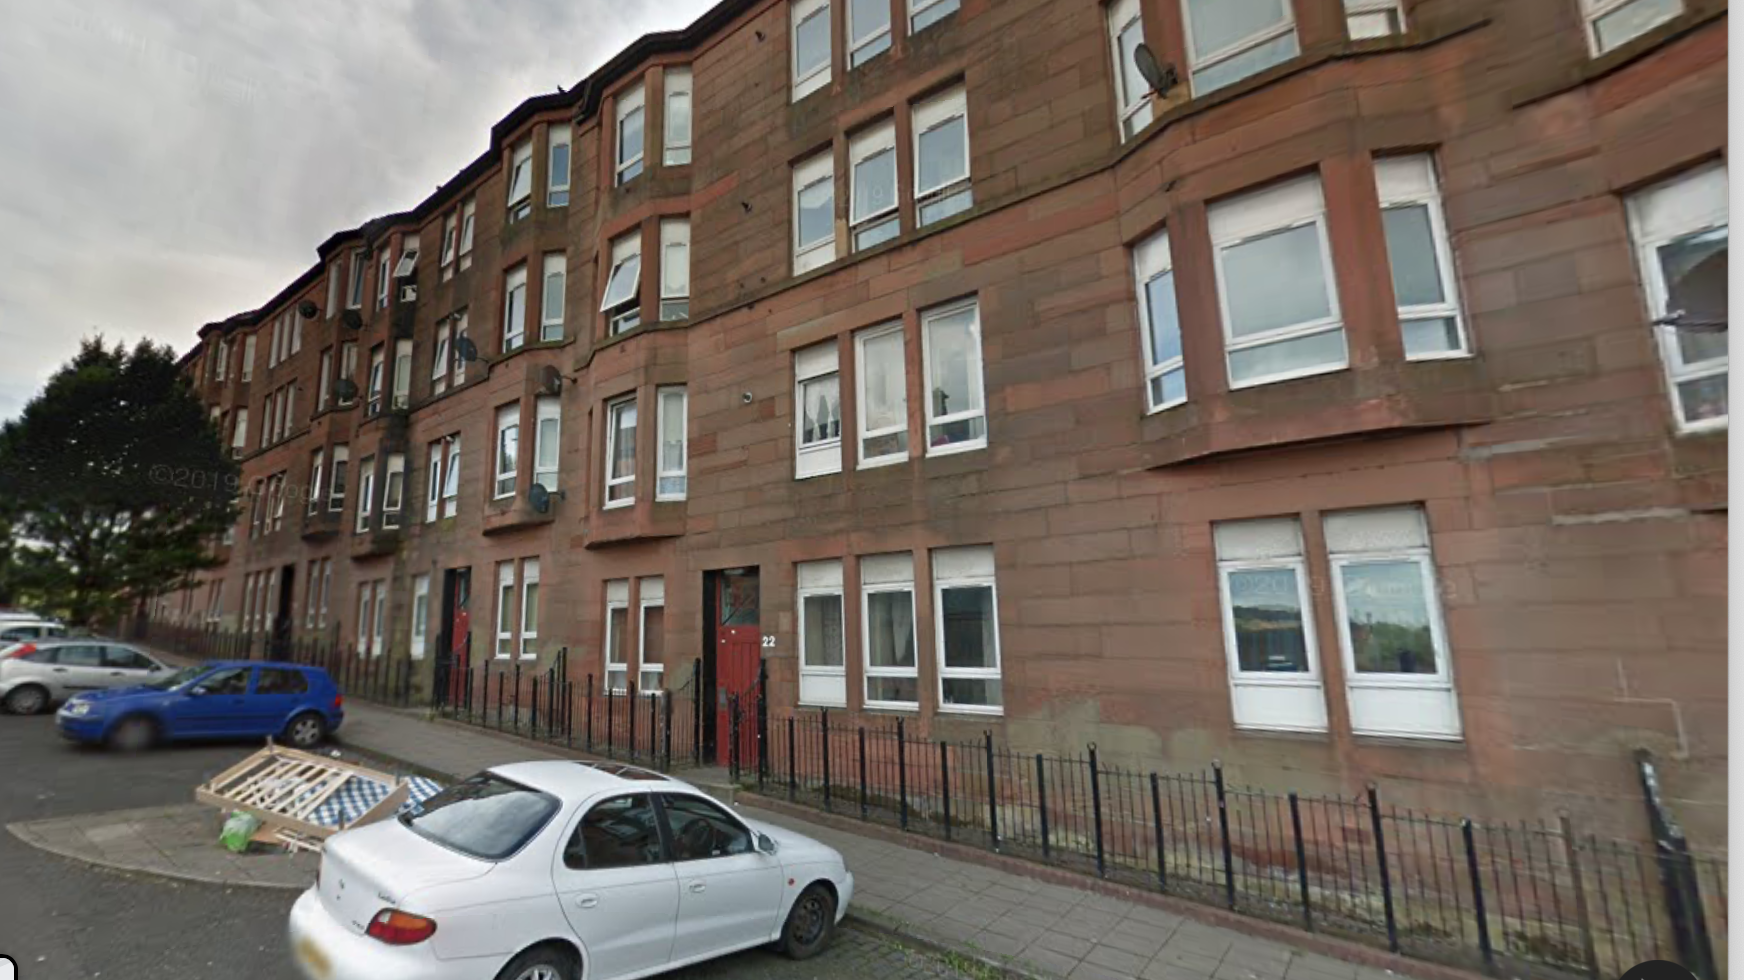 Gadshill Terrace, Roystonhill, Glasgow, tenement refurbishment